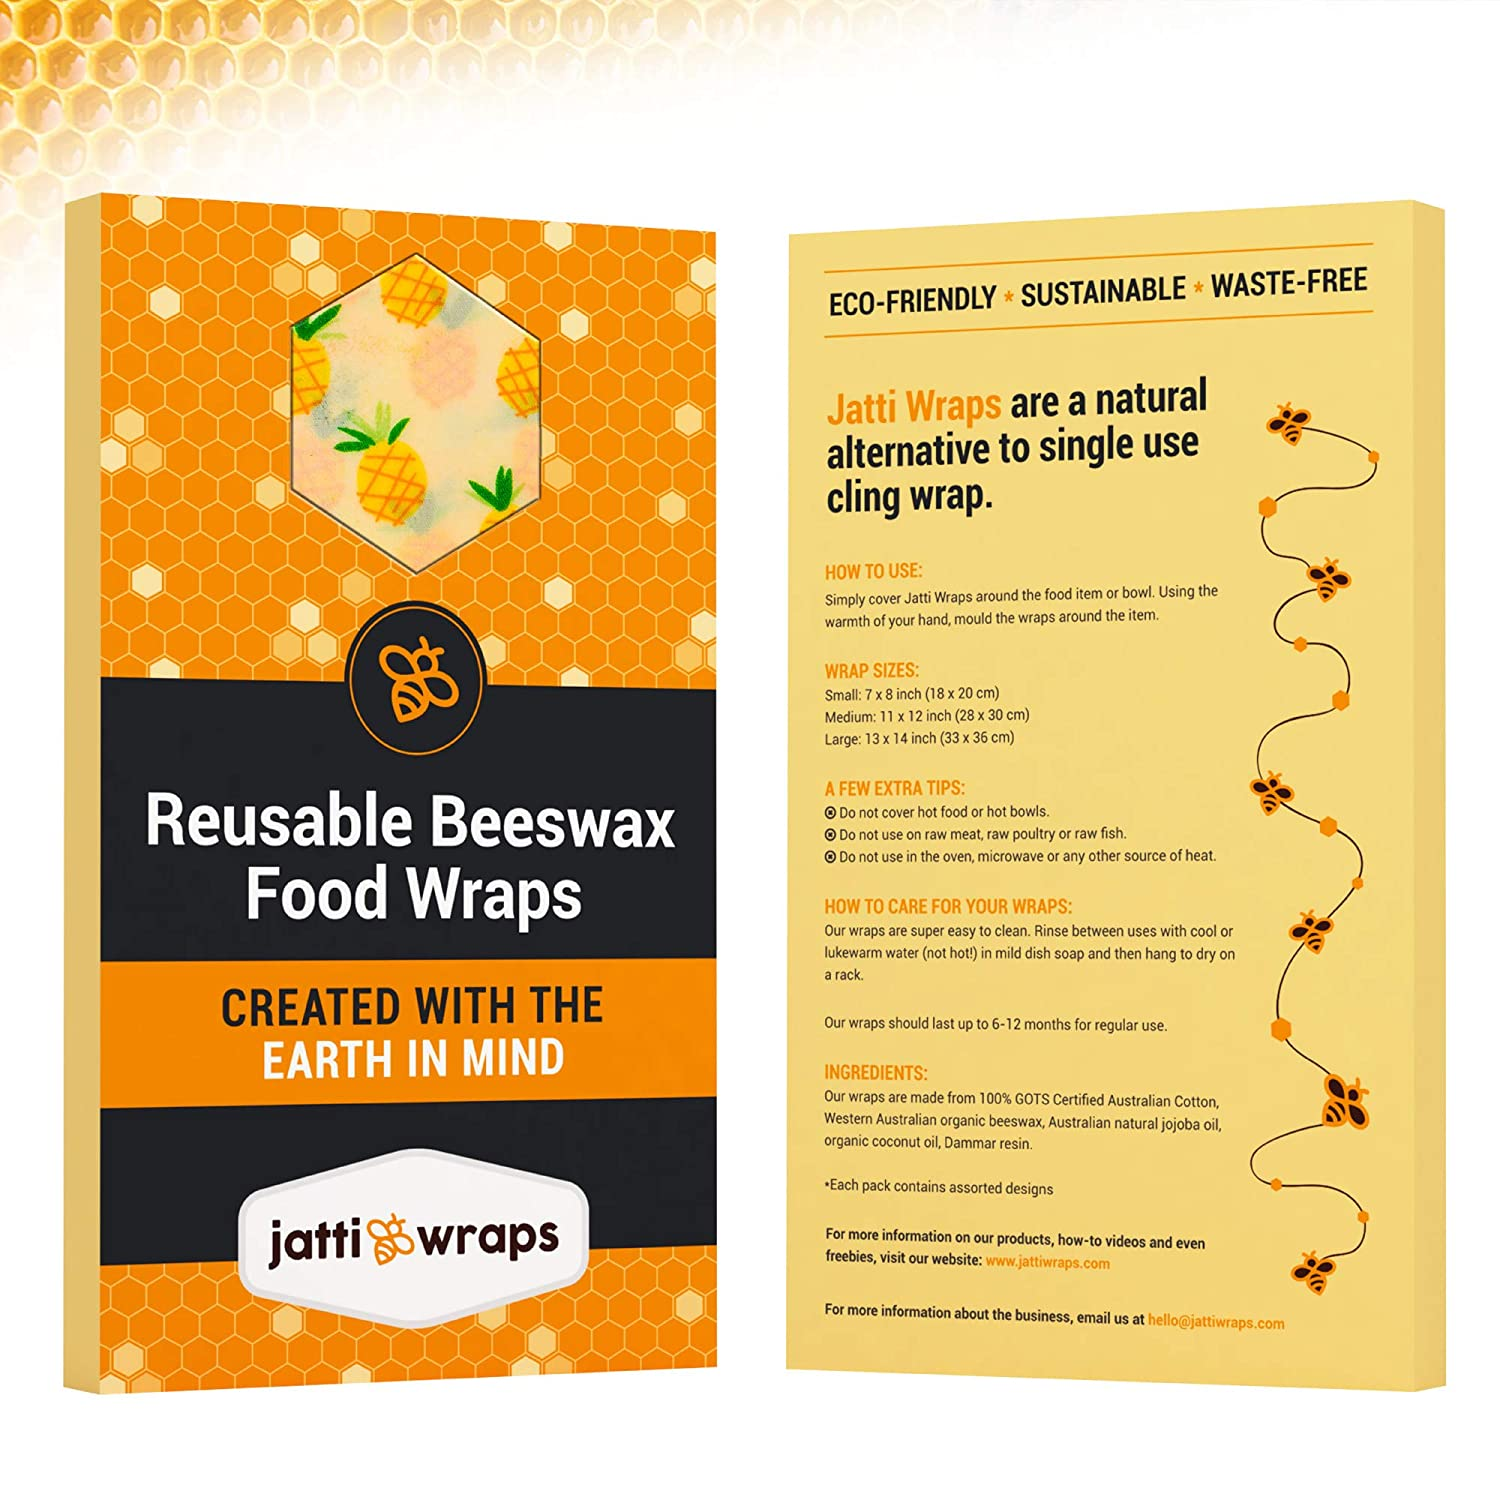 Reusable Beeswax Wraps Set - Plastic Free, Sustainable and Reusable Food  Wrap - Bees Wax Wraps are A Natural Alternative to Cling Wrap - 3 Pack of